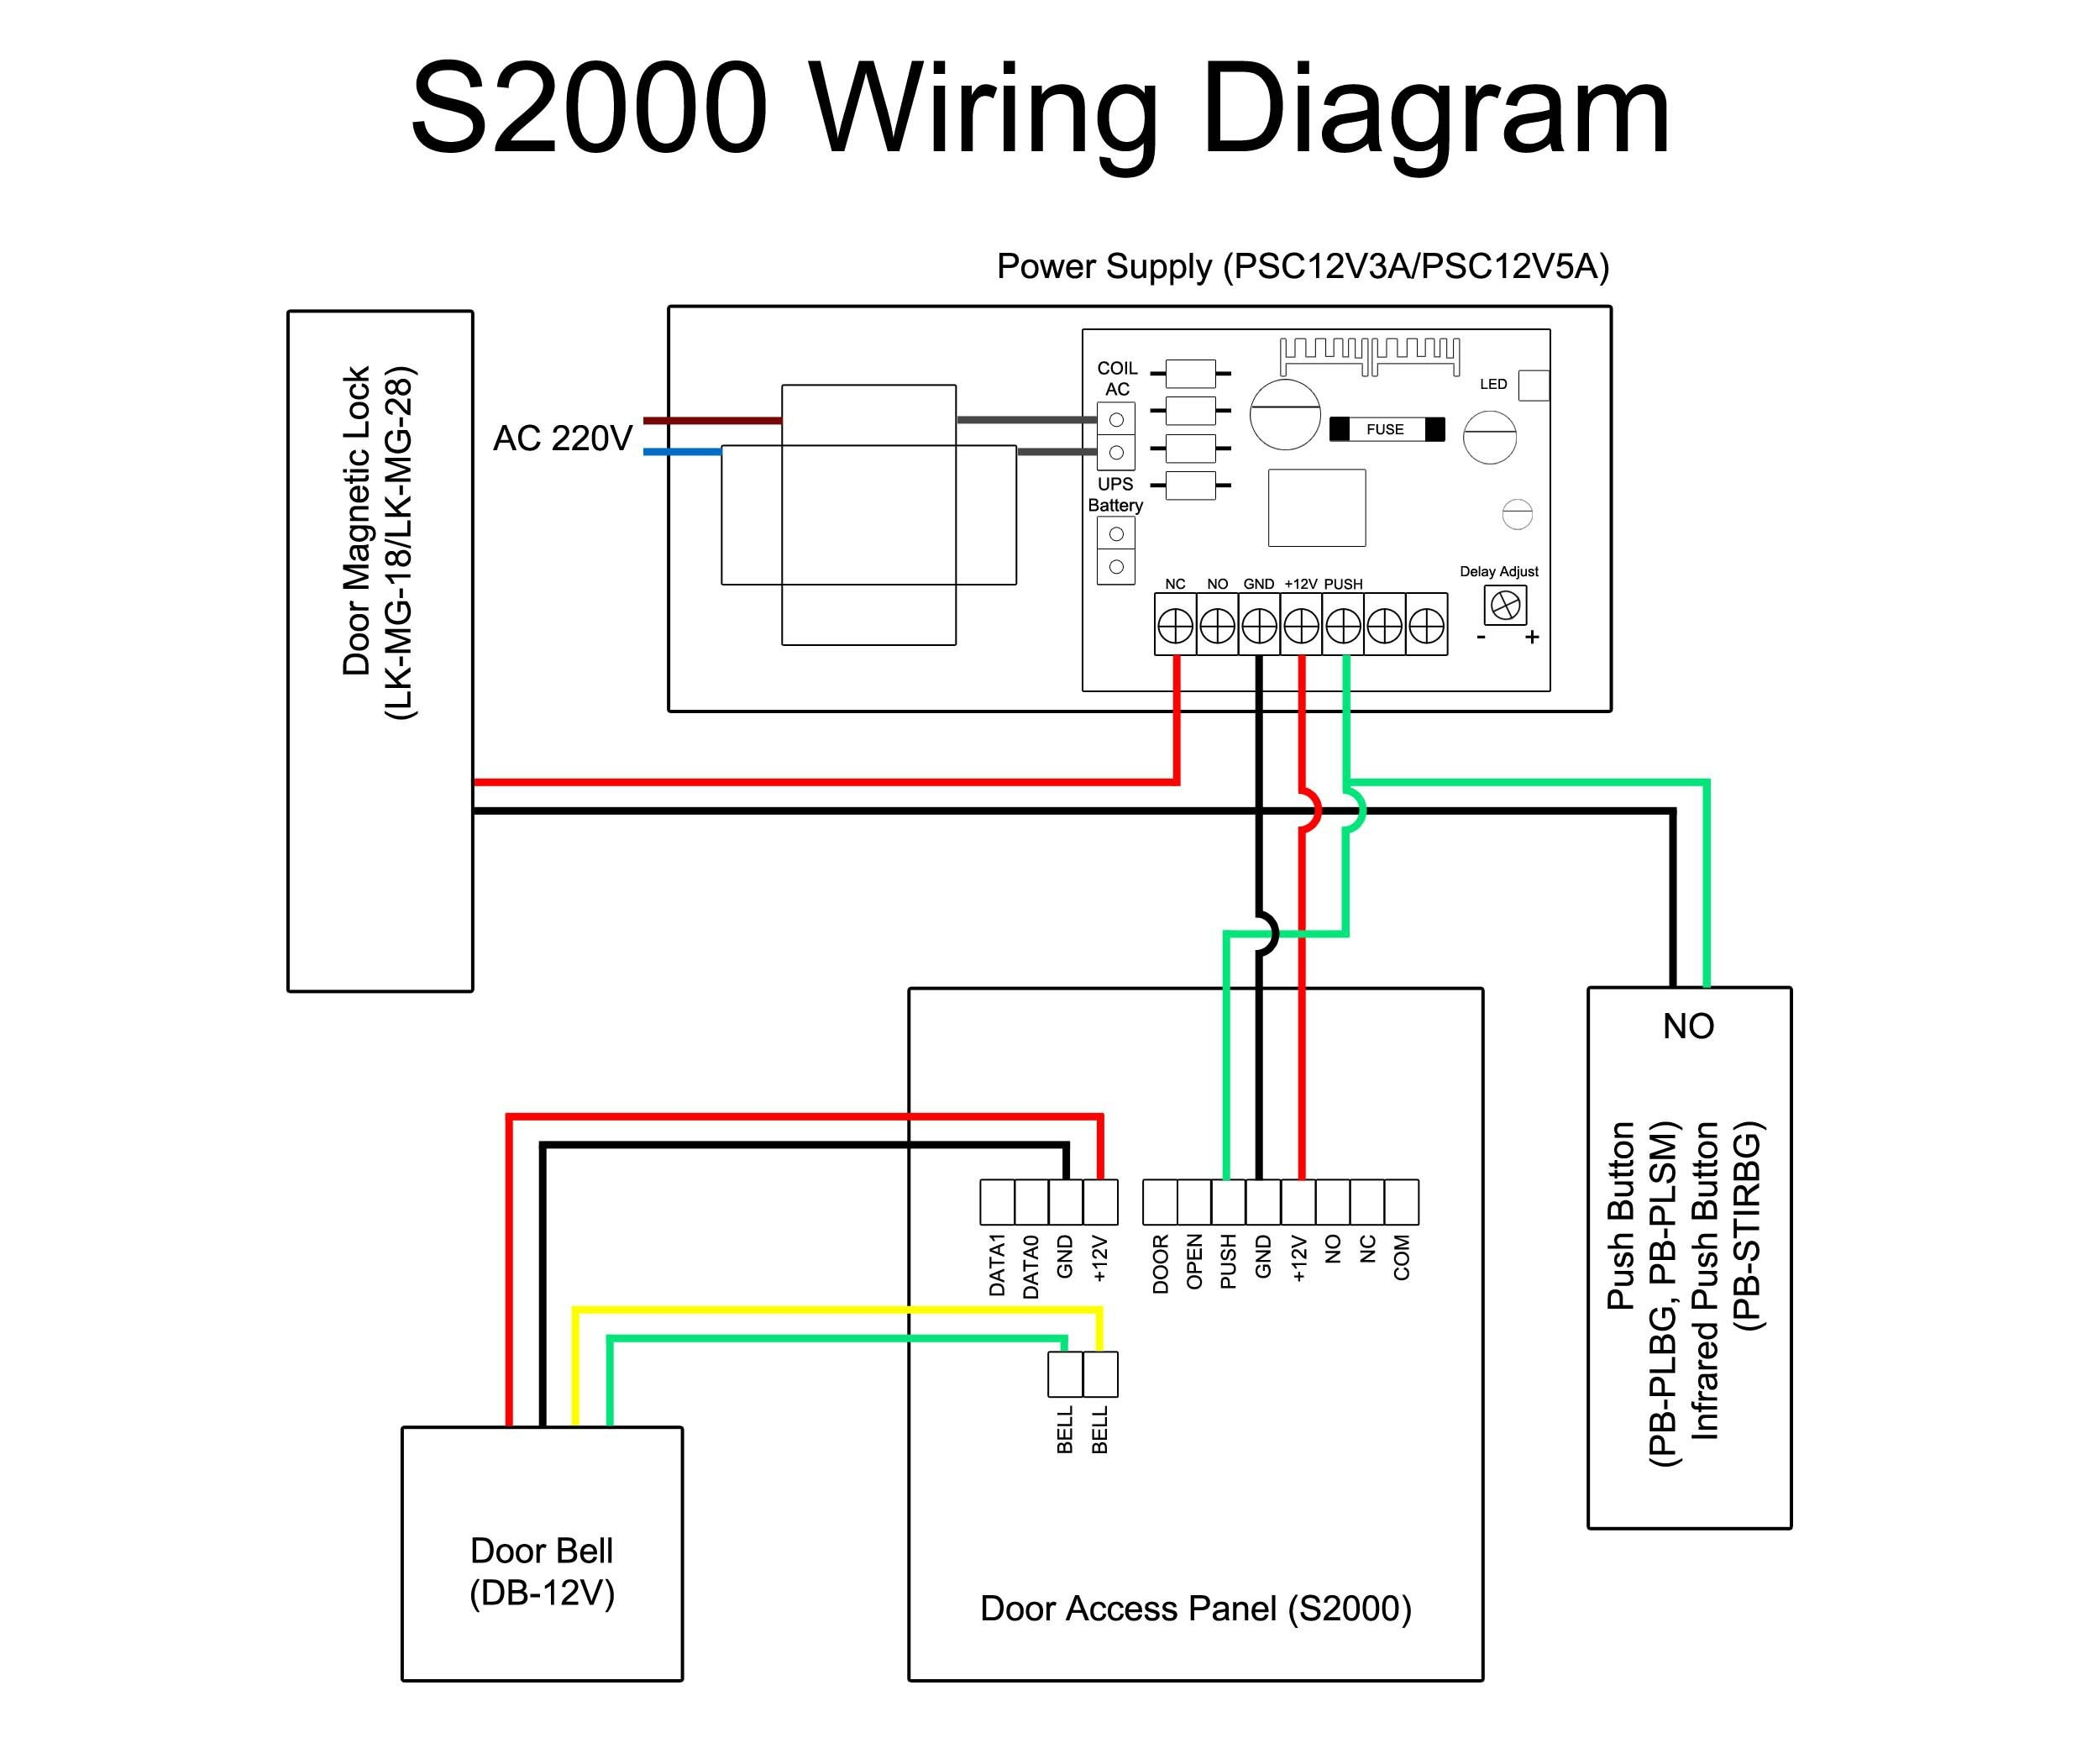 cctv camera wiring diagram Collection-Wiring Diagram for Home Security Camera Save Home Cctv Wiring Diagram Save Best Harbor Freight 6-a